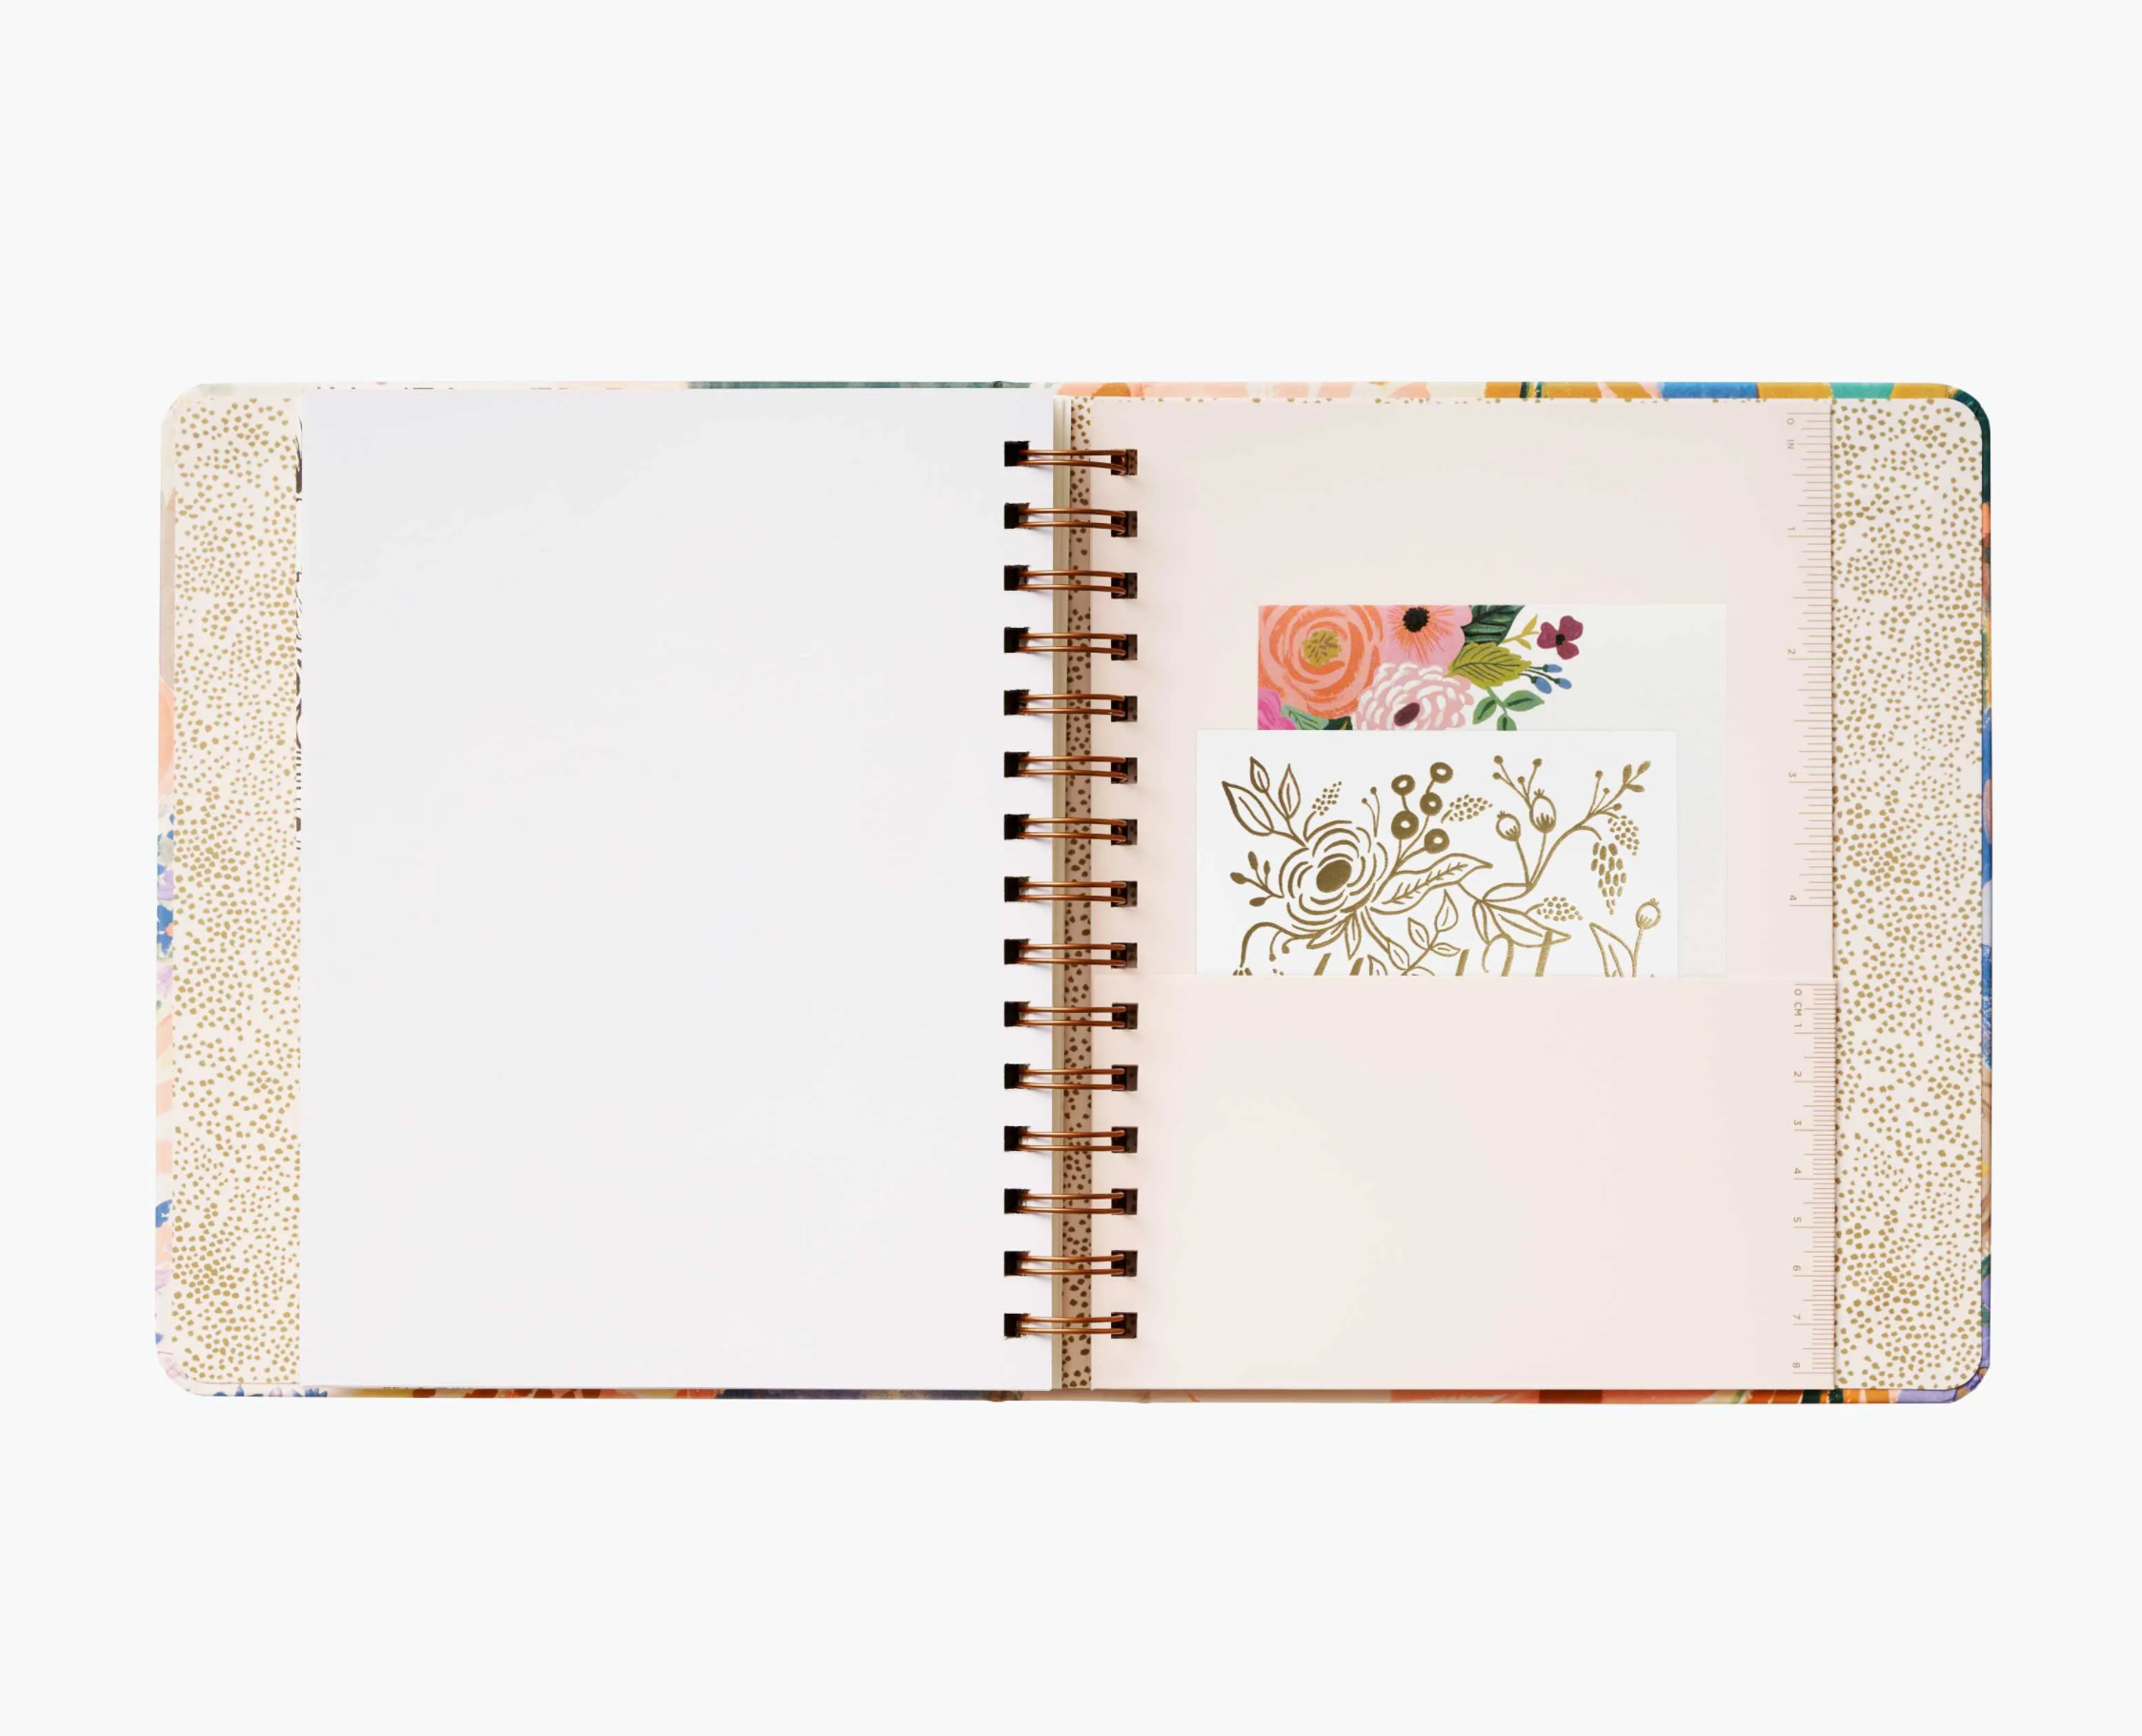 2021 17-Month Luisa Planner, Rifle Paper Co.